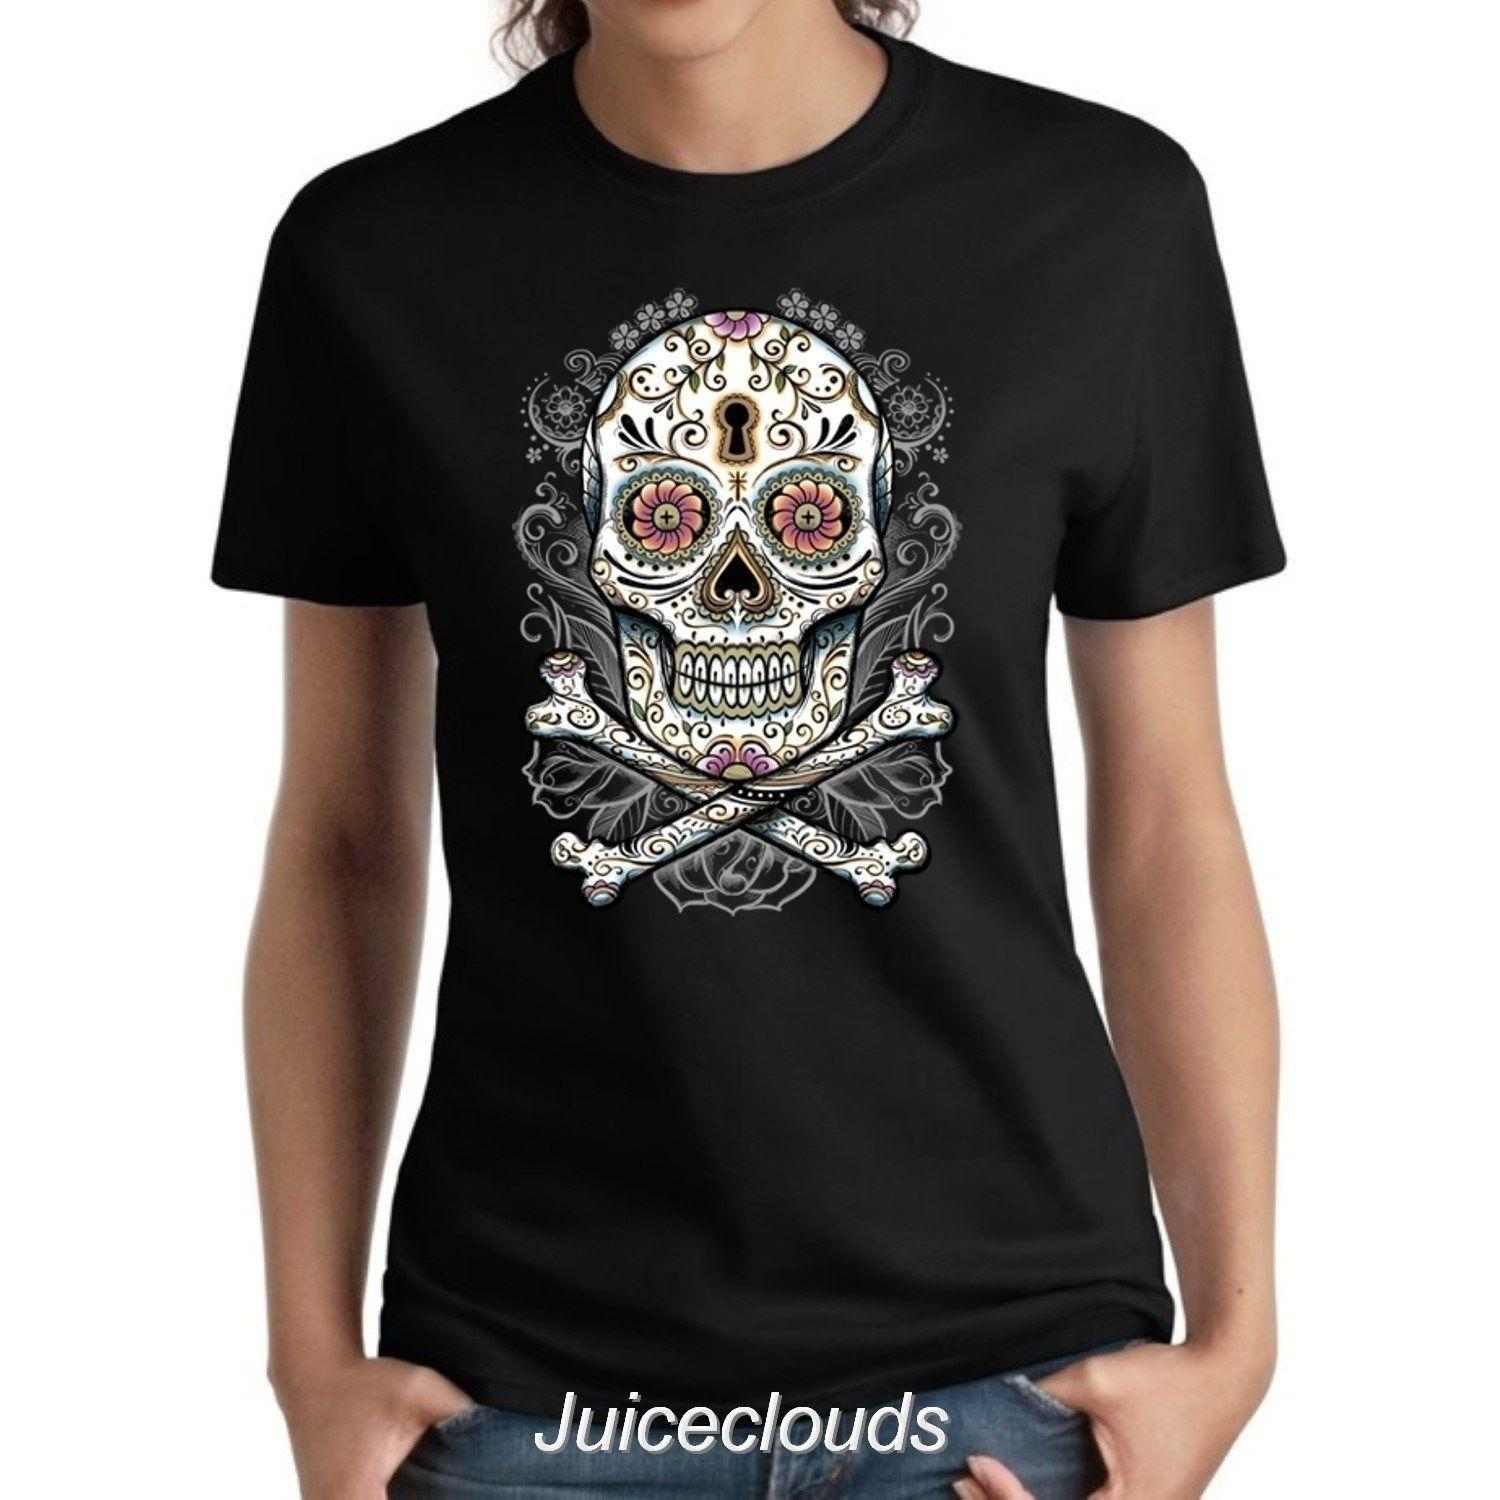 93e2bbd9 Floral Sugar Skull Ladies Shirt Day Of The Dead Skeleton Tattoo Women's Tee  Size Discout Hot New Tshirt Cattt Windbreaker Pug Tshirt